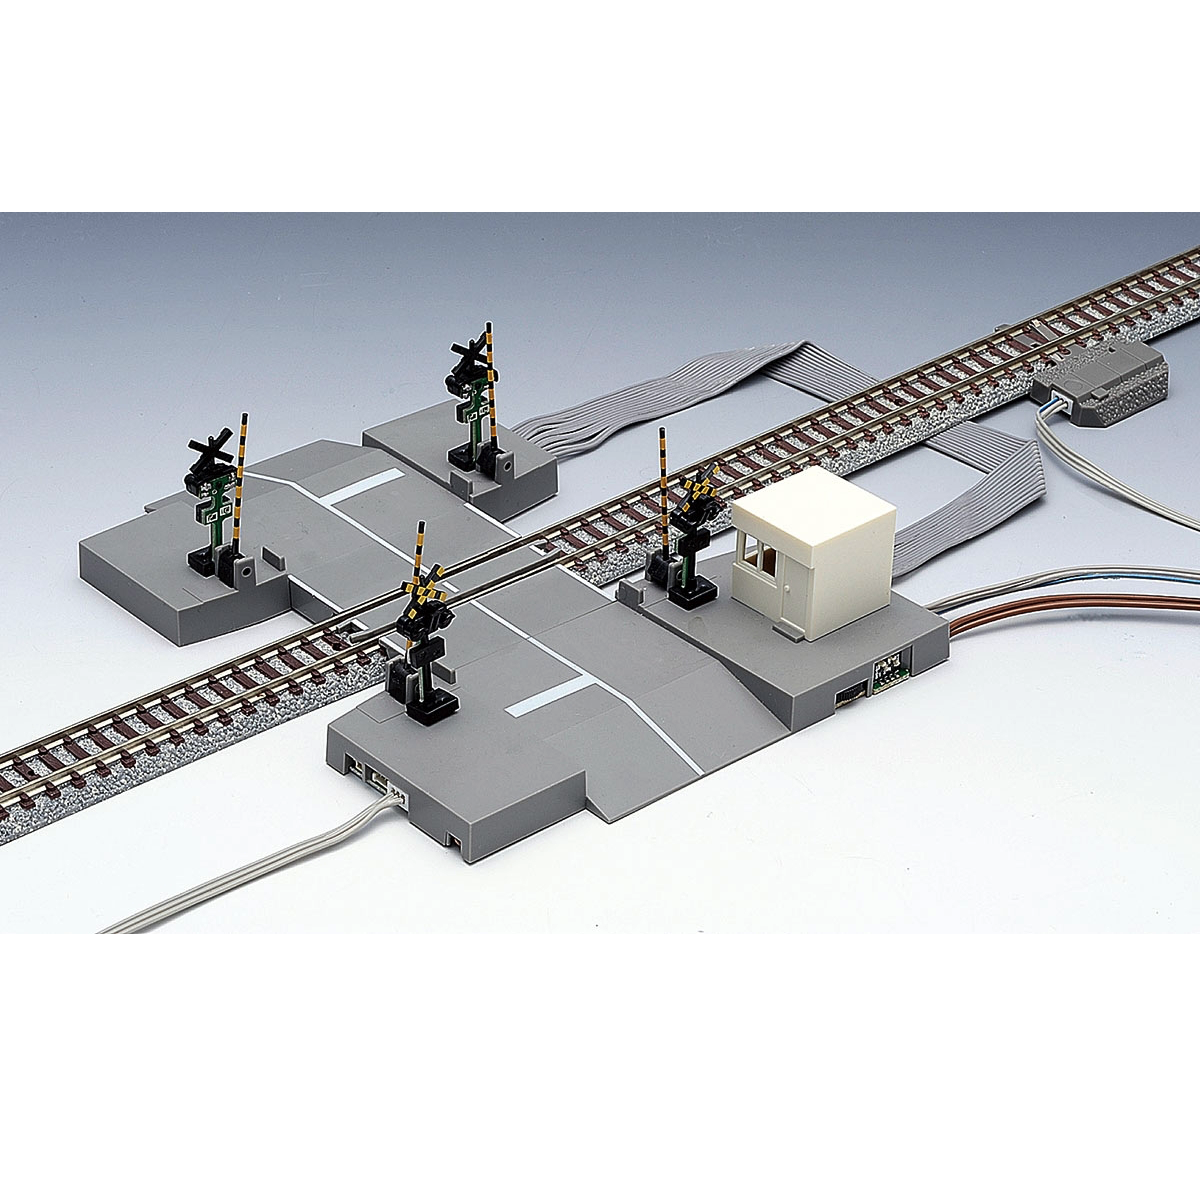 Tomix 5569 TCS Automatic Crossing Gate System II - N